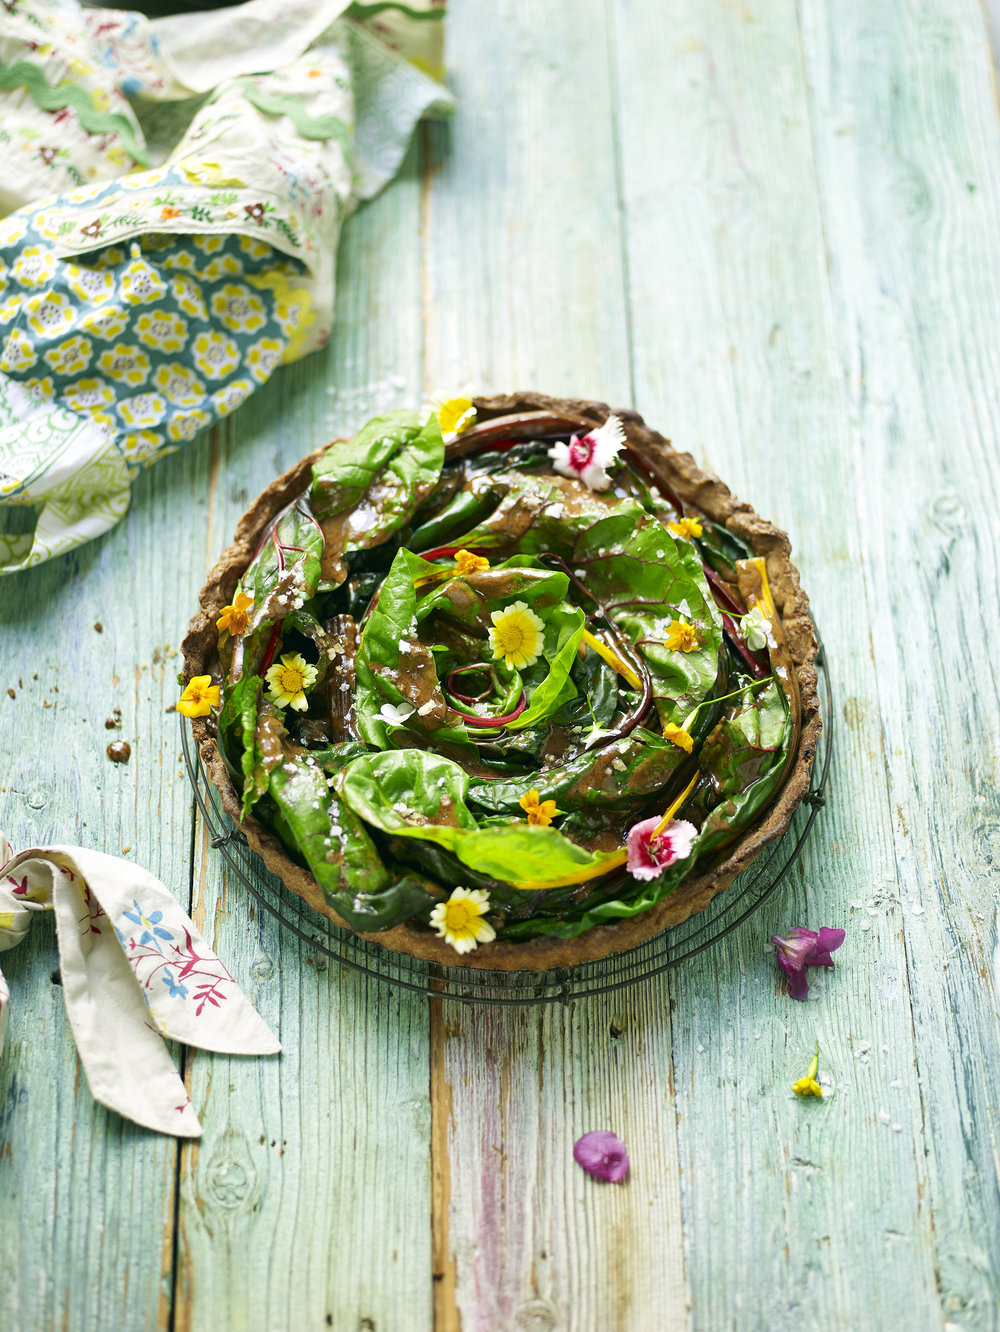 SALTED CARAMEL SWISS CHARD PIE - Sweet caramel made with cream and coconut sugar, with tender blanched chard